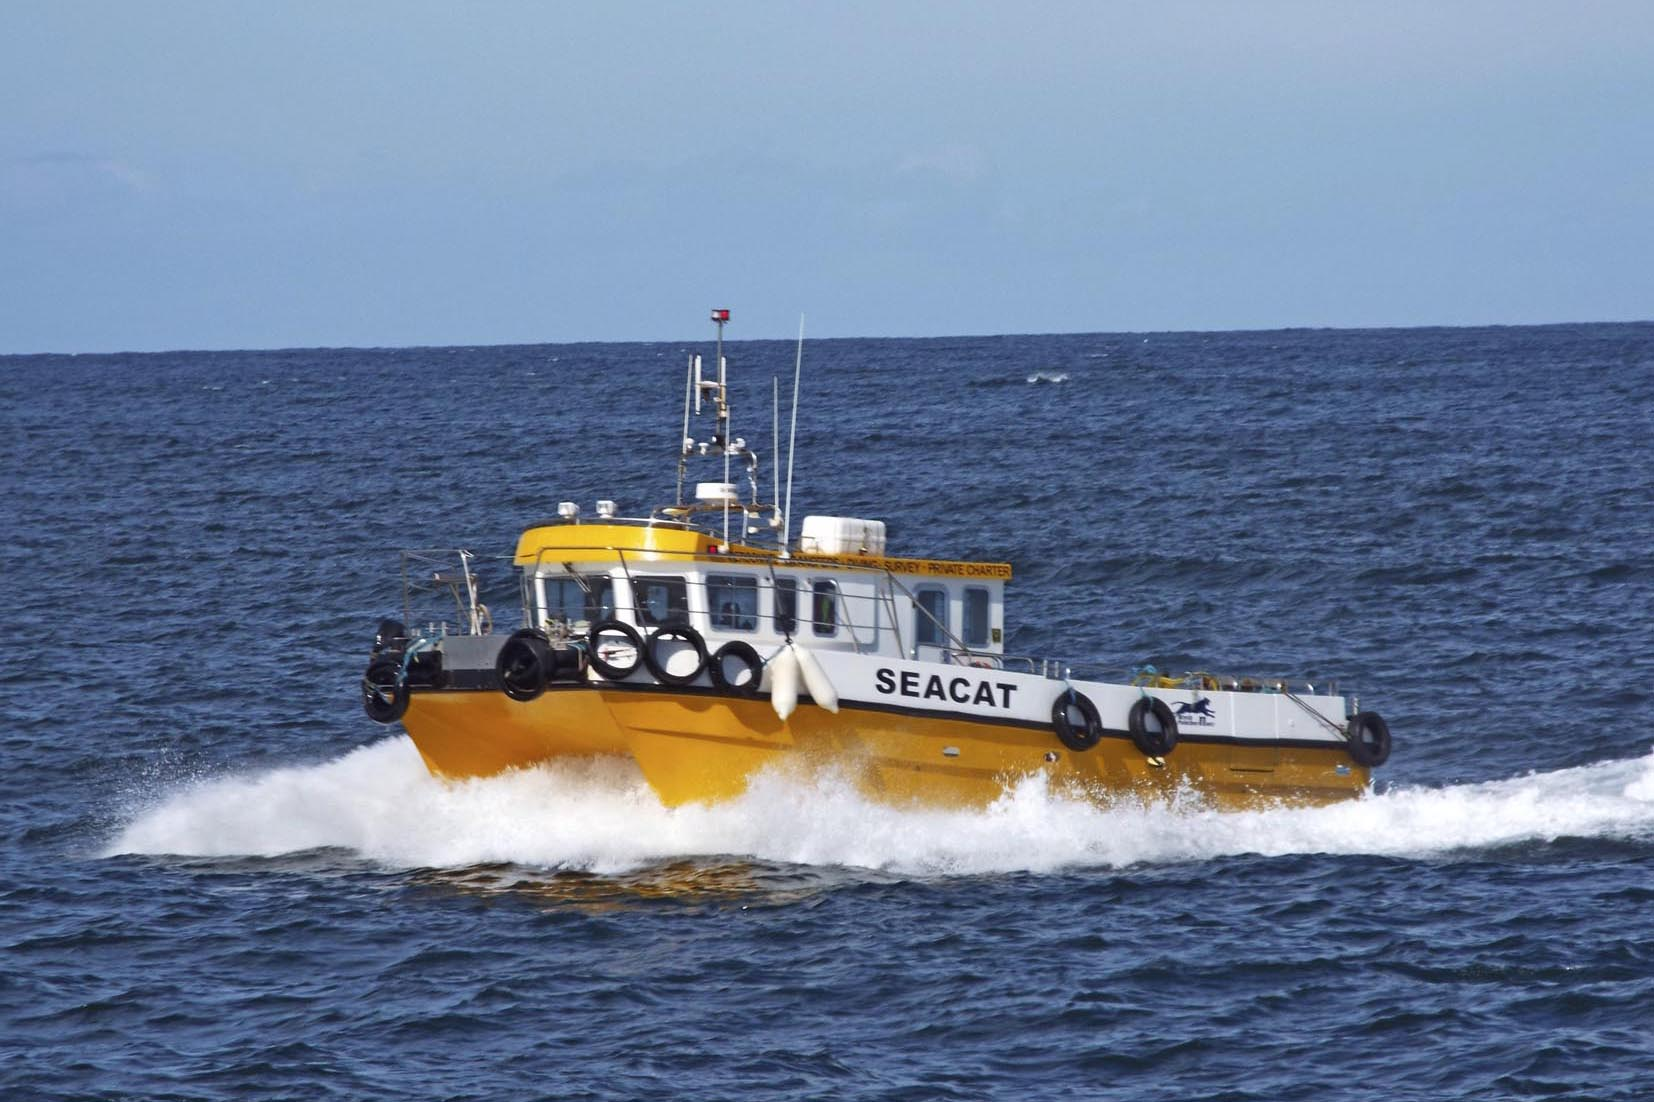 Seacat, based in Macduff